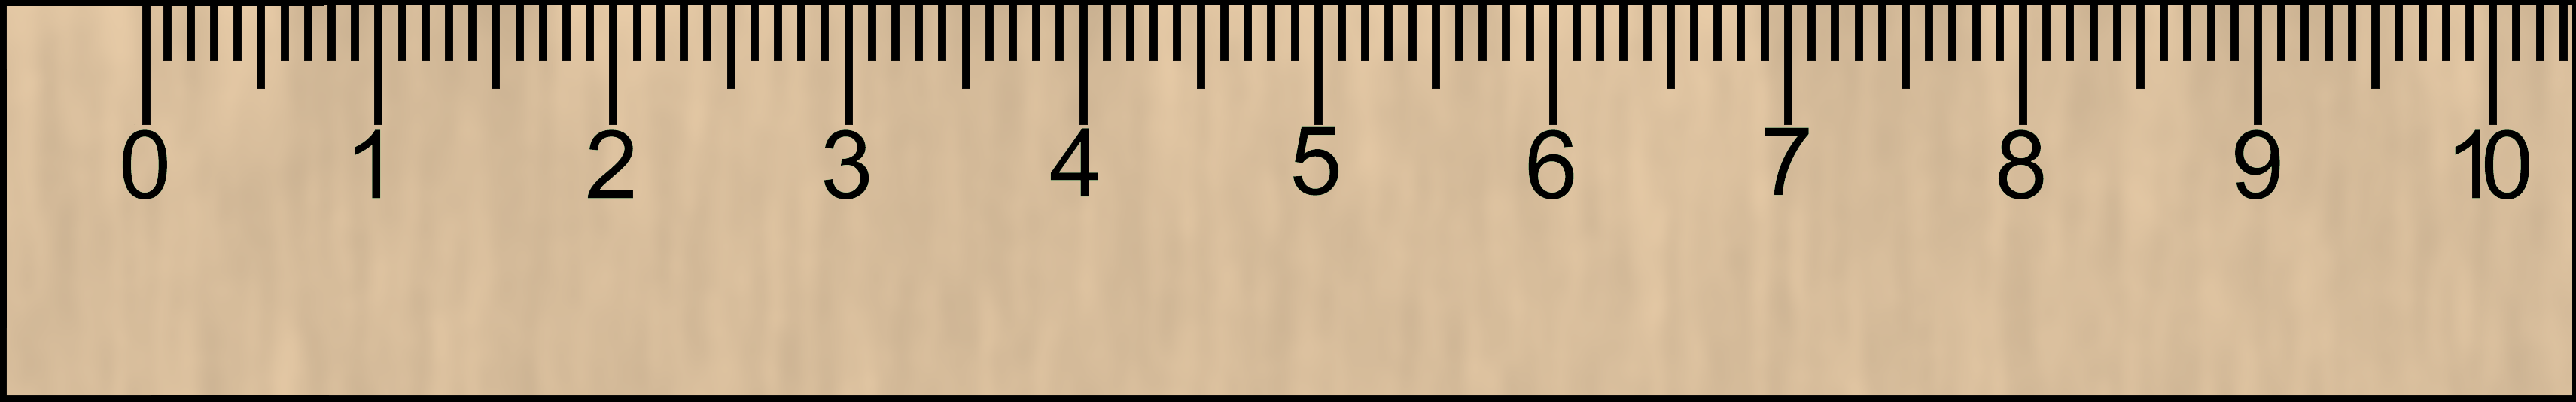 worksheet Ruler With Measurements ruler measurements ruler